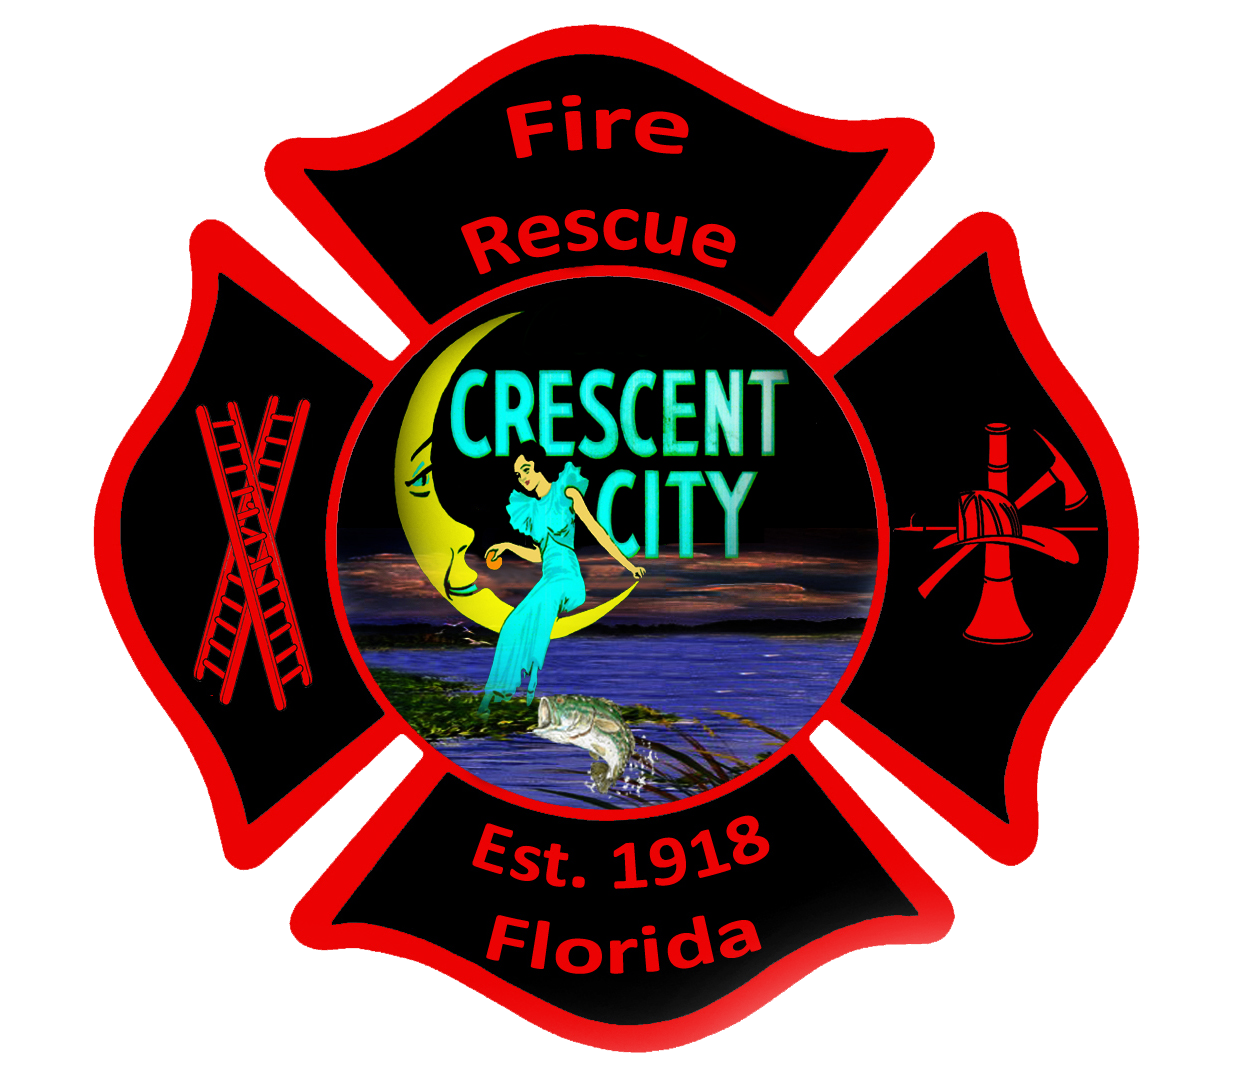 Crecent Ciry Fire Rescue